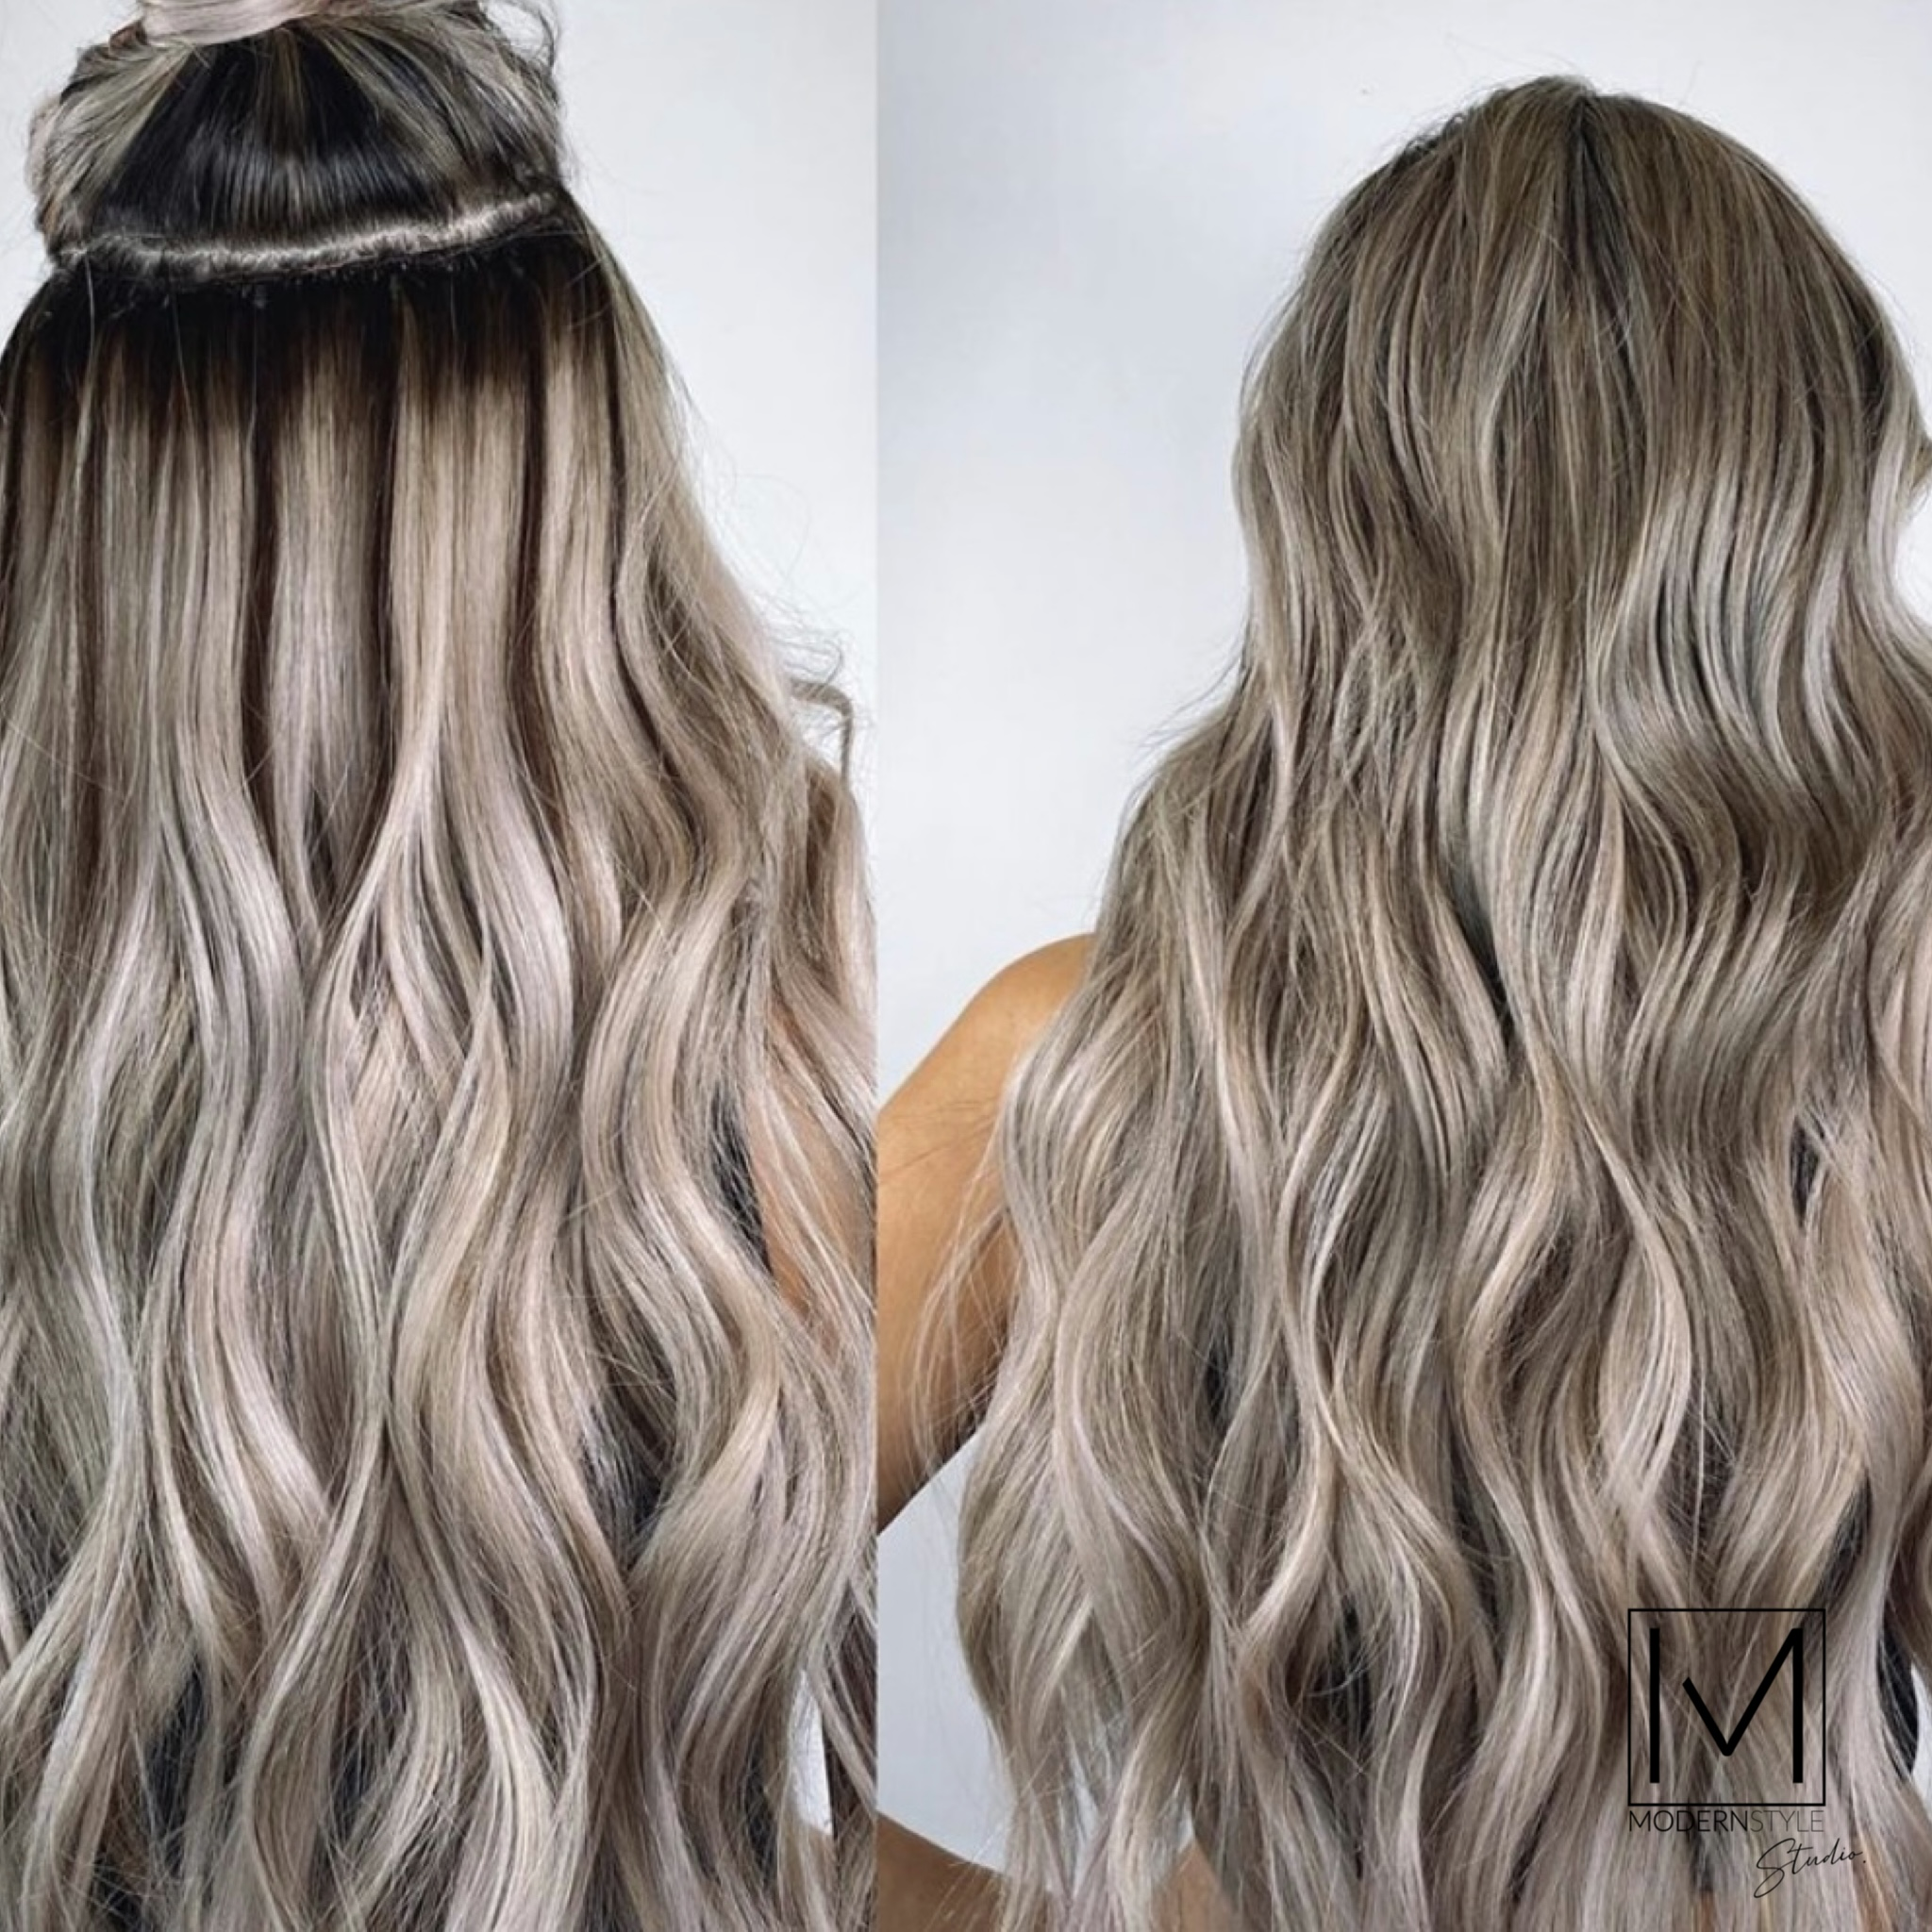 Best hair extensions in Charlotte, hand tied extensions near me, hair extensions near me, great lengths hair extensions, Olaplex stylist, sew in extensions Charlotte nc